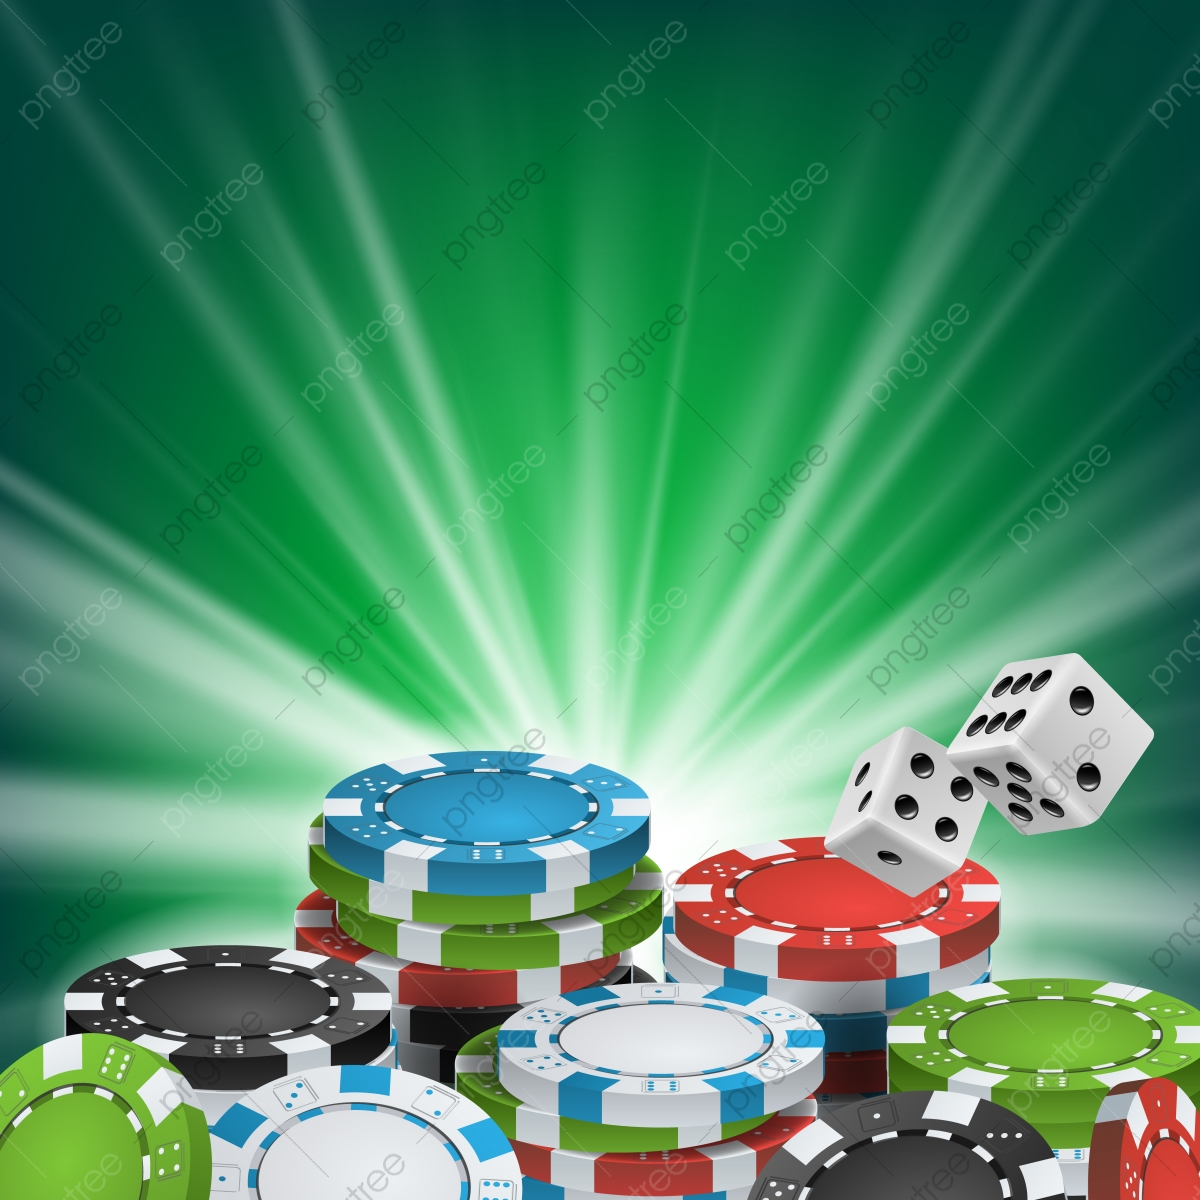 Poker Poster Vector Online Poker Gambling Casino Billboard Sign Jackpot Advertising Concept Illustration Poker Money Online Png And Vector With Transparent Background For Free Download